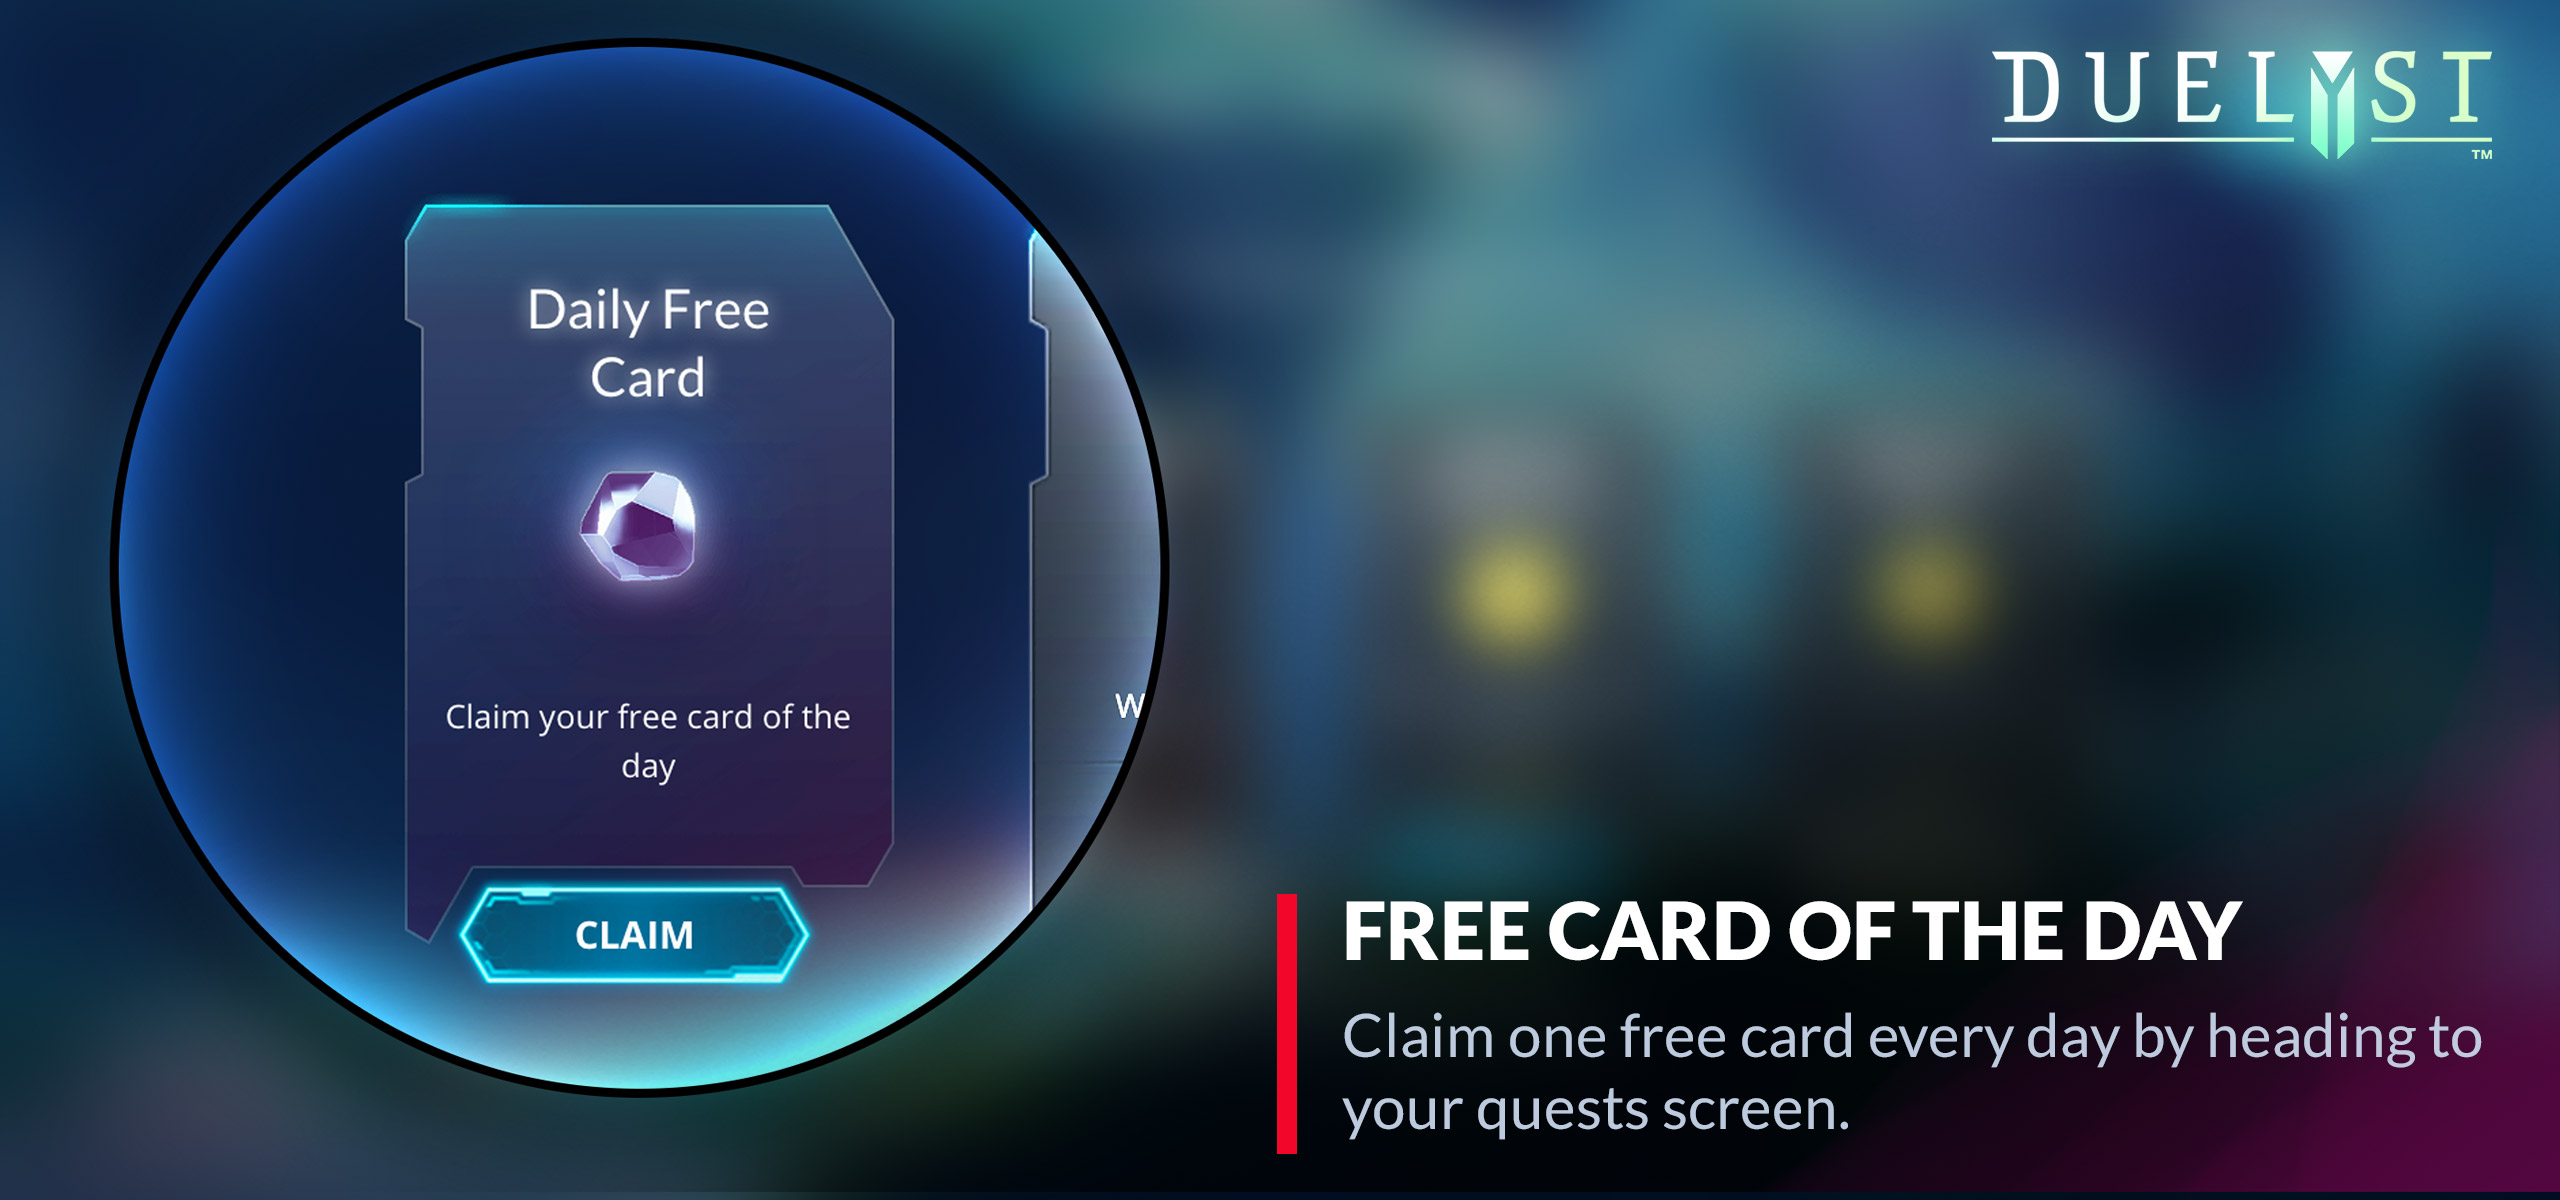 free_card_of_the_day